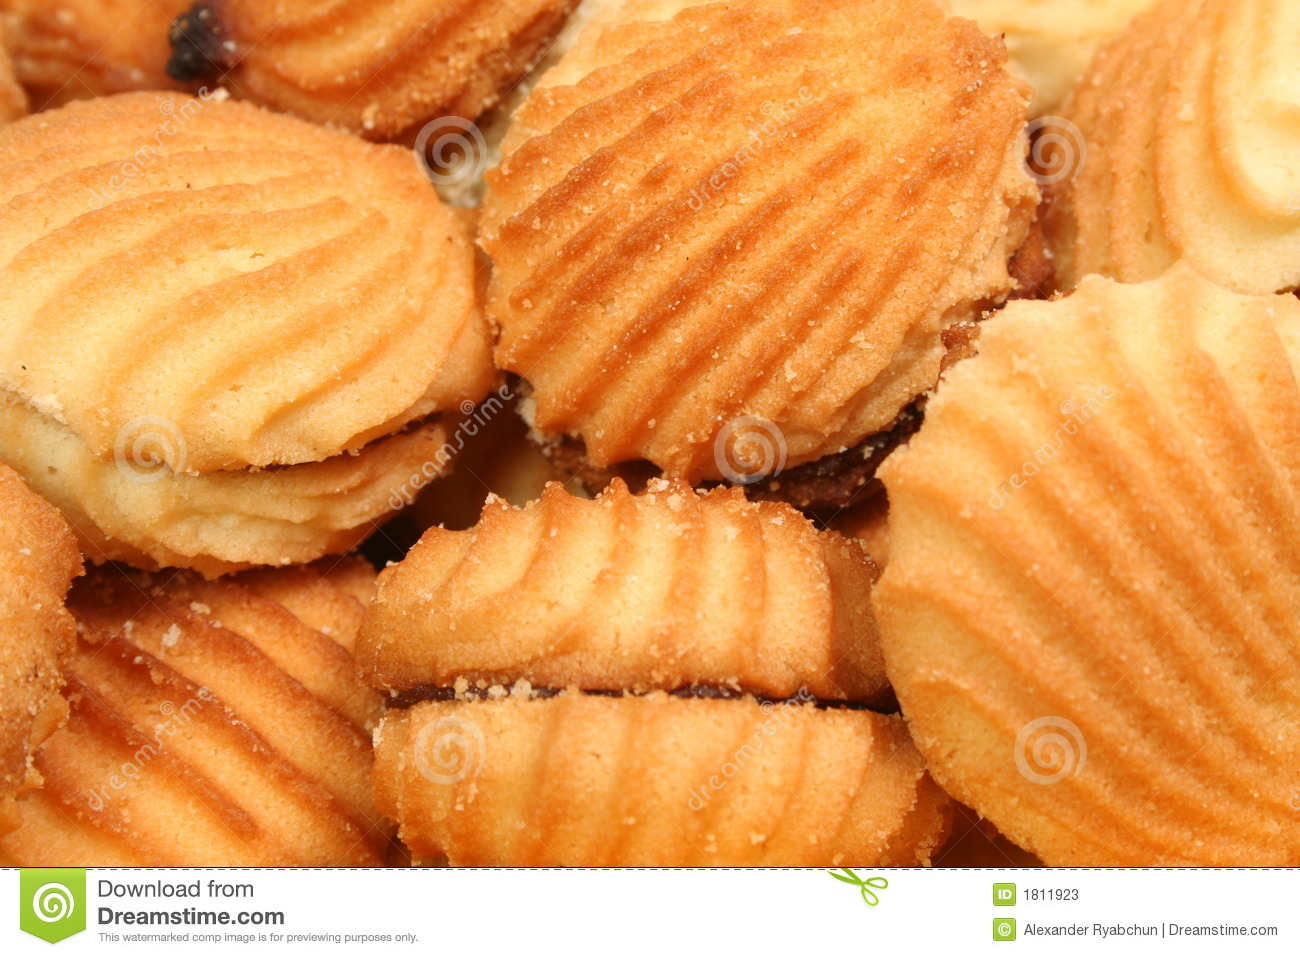 galletas de mar: